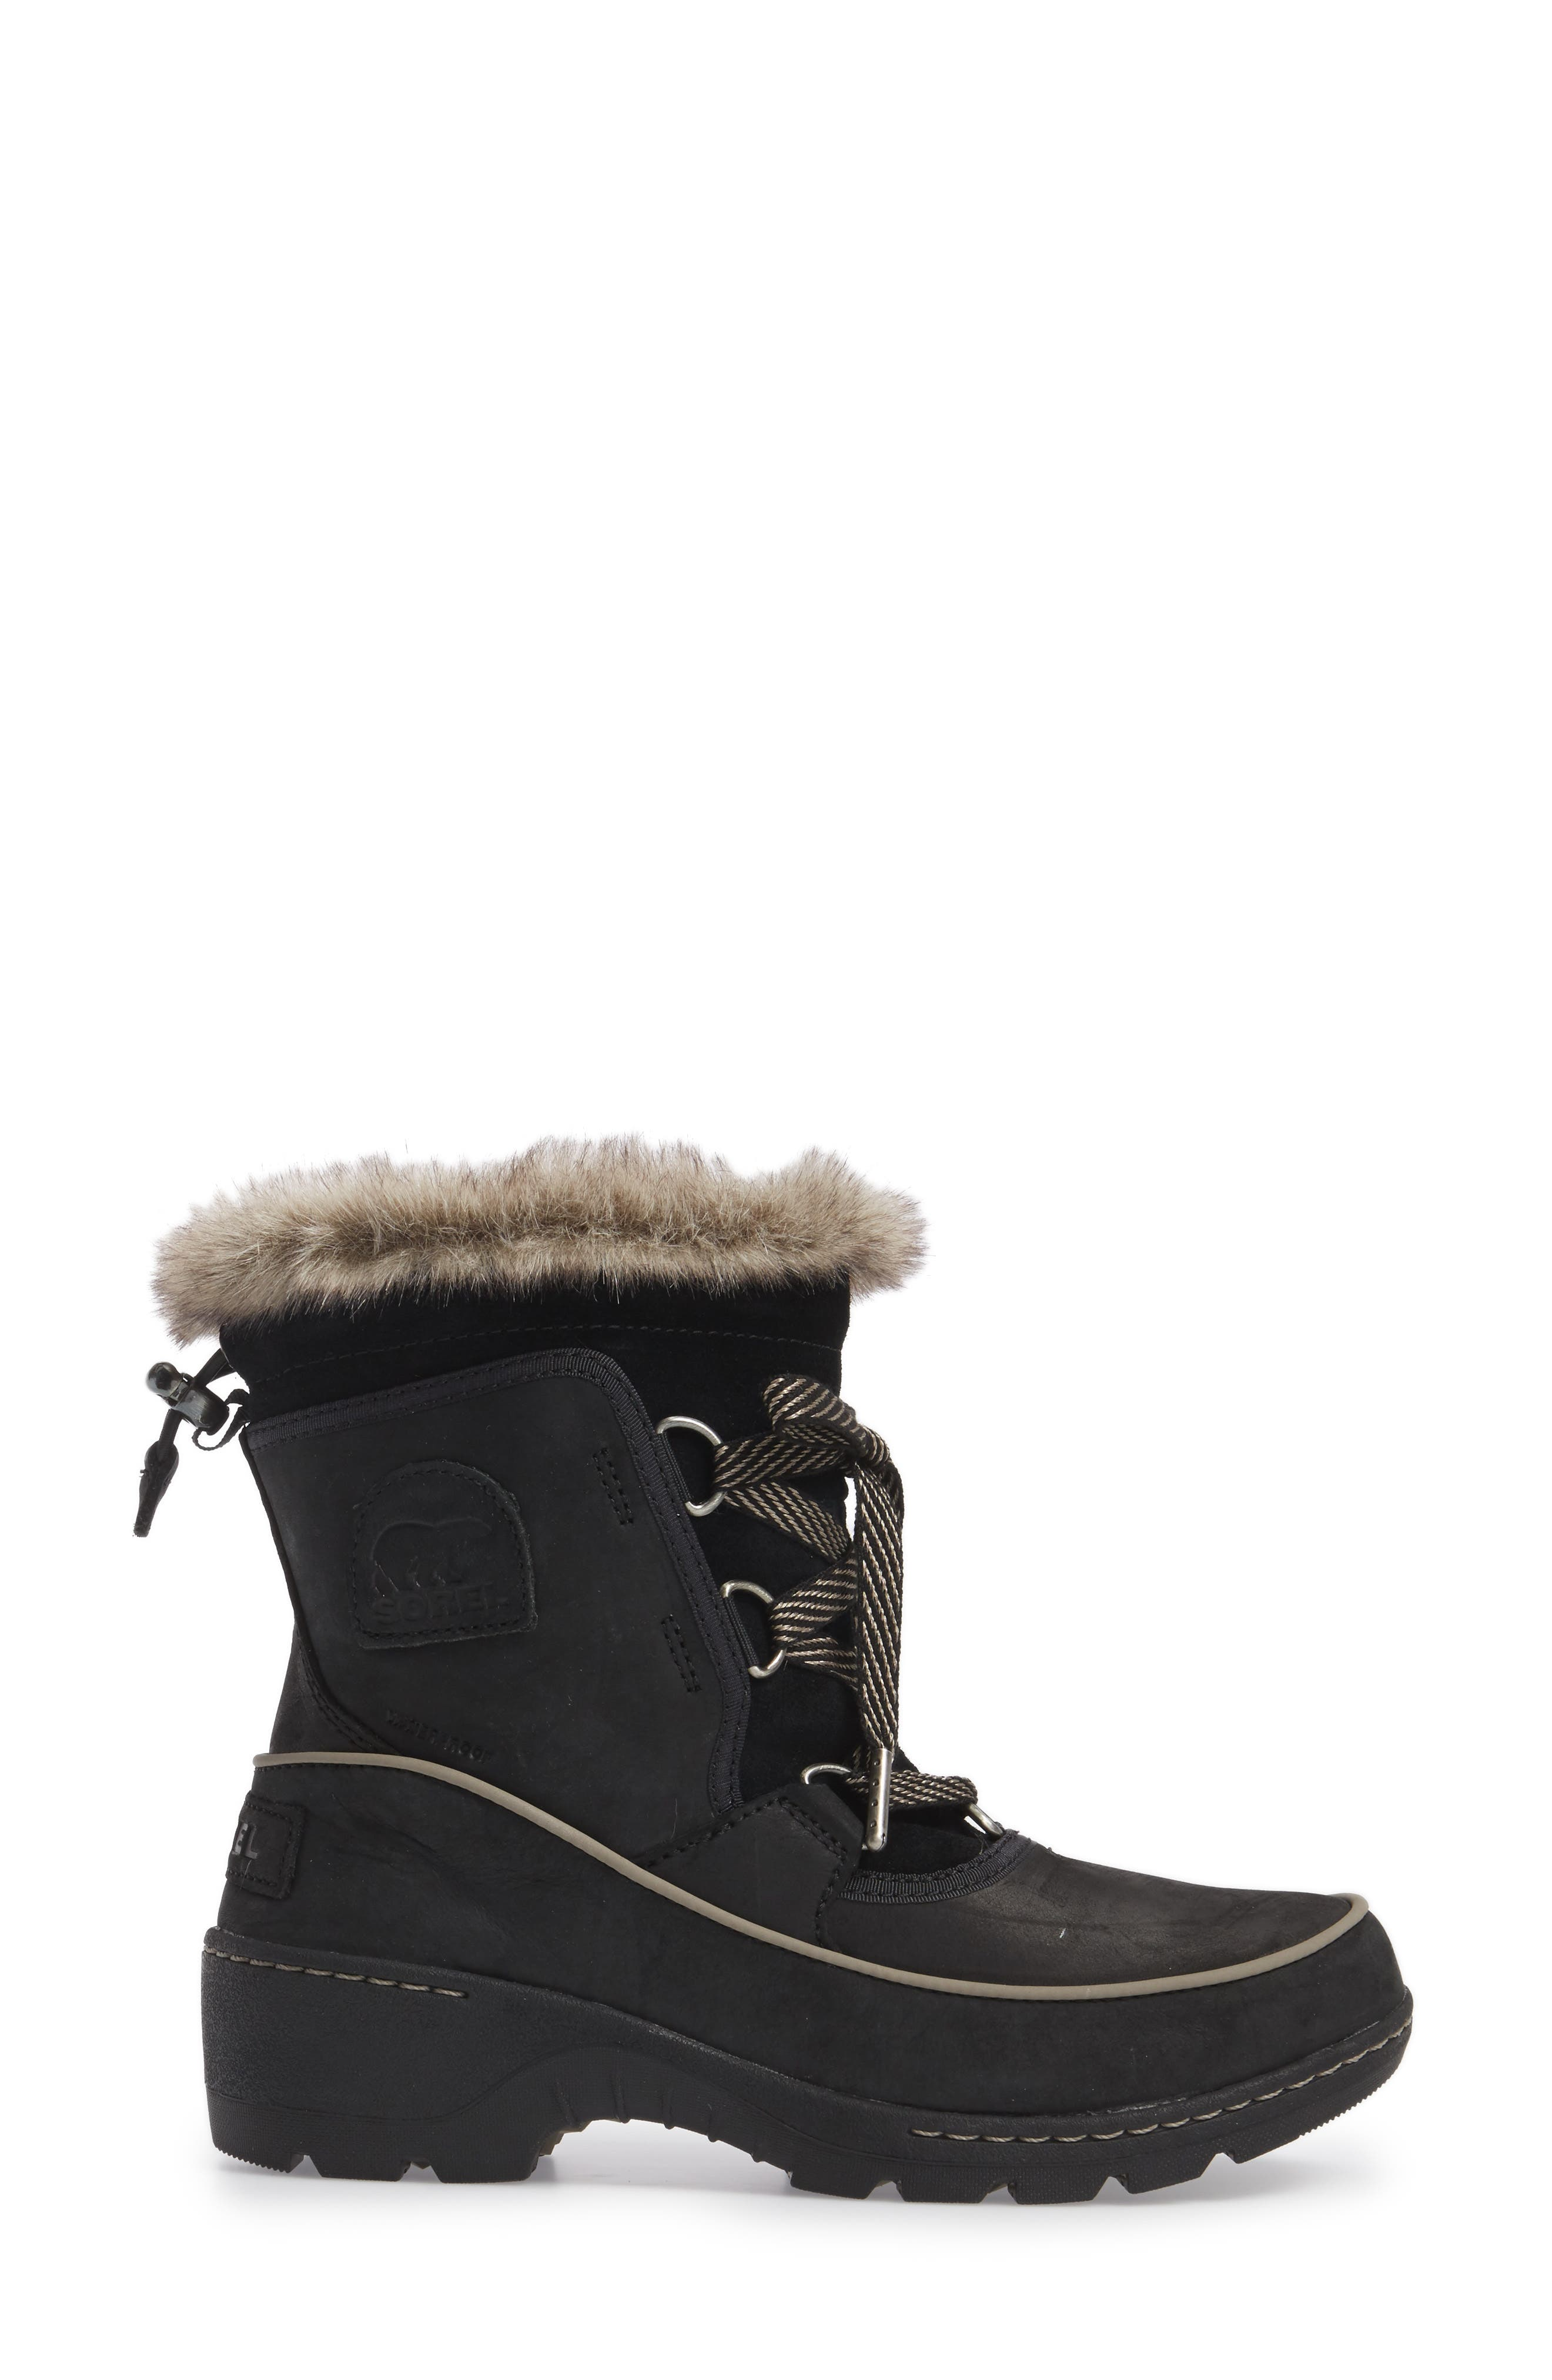 Tivoli II Insulated Winter Boot with Faux Fur Trim,                             Alternate thumbnail 5, color,